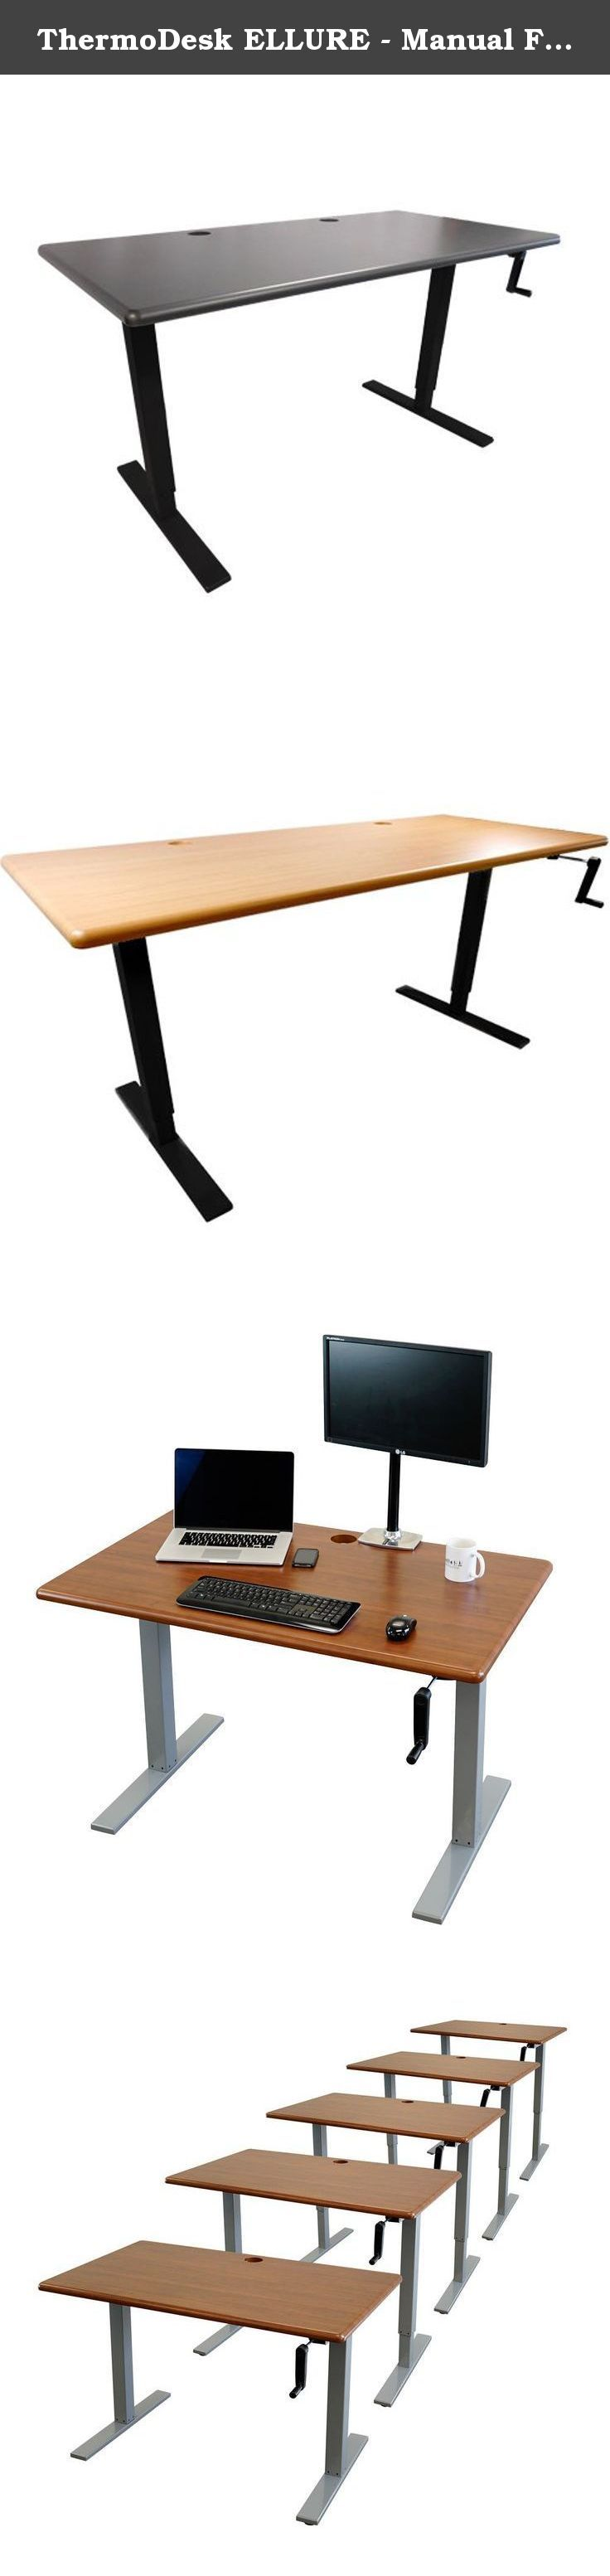 """ThermoDesk ELLURE - Manual Fast Adjustable Height Standing Desk - Sit Less & Be Healthier- Ergonomic Design- Predrilled for Easy Assembly - Black Base ( Shark Gray Desktop, 30"""" x 48"""" ). Blending Economy and Elegance Like Never Before, Plus FREE SHIPPING! iMovR's ELLURE combines a low-cost manual base with a premium tabletop, so you can enjoy the elegance of an extra-thick (1-1/8""""), ergonomically-contoured, 3D-laminated desktop without the price tag of an electric desk. Despite its…"""